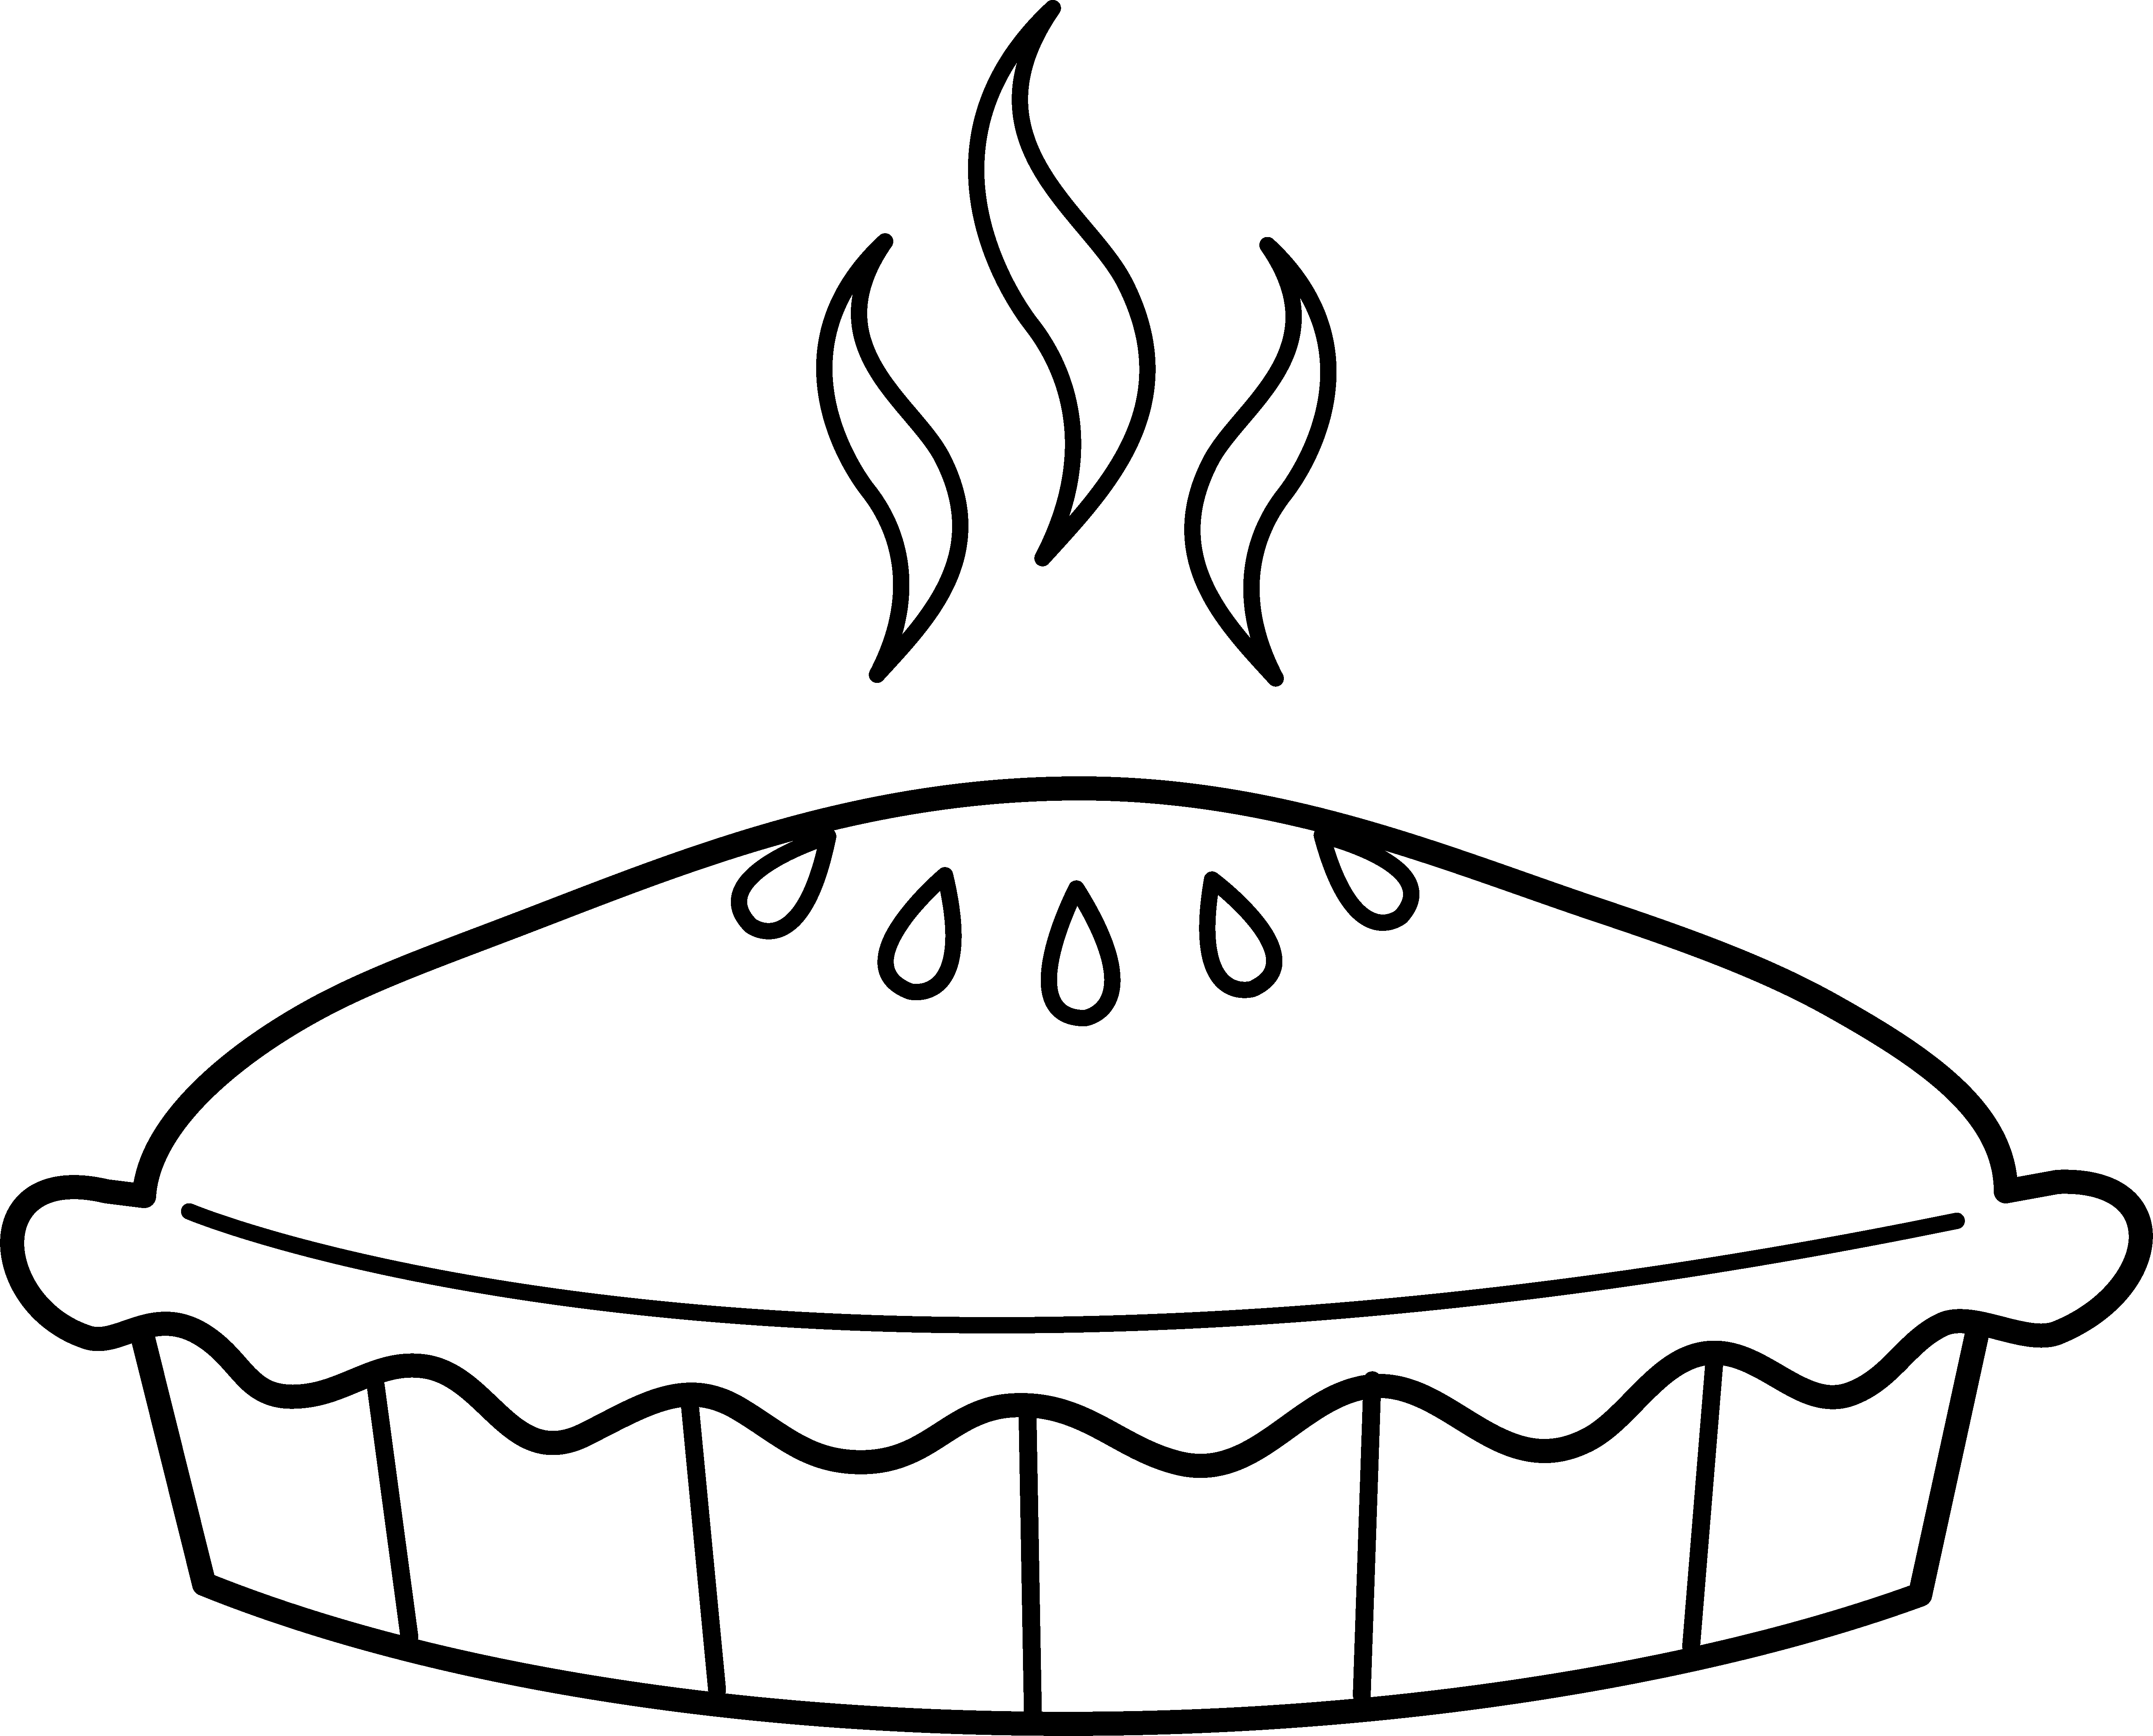 Pie Coloring Page - Pie Coloring Page Free Clip Art